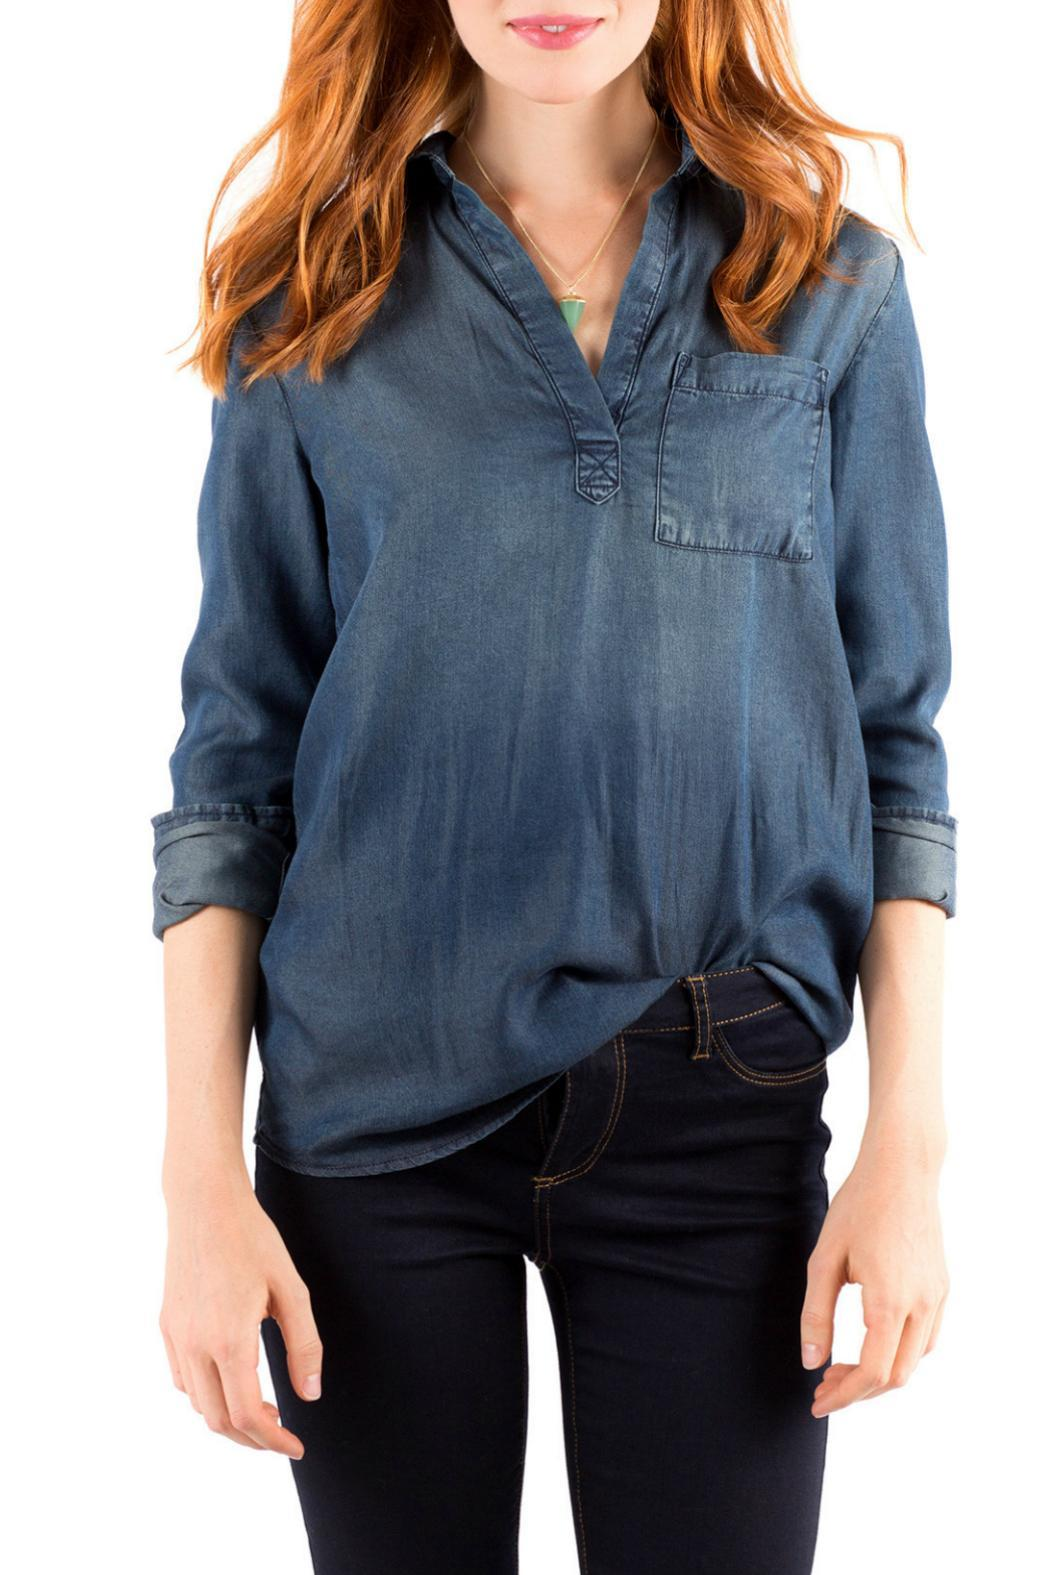 Downeast Basics Mountain Blue Top - Main Image